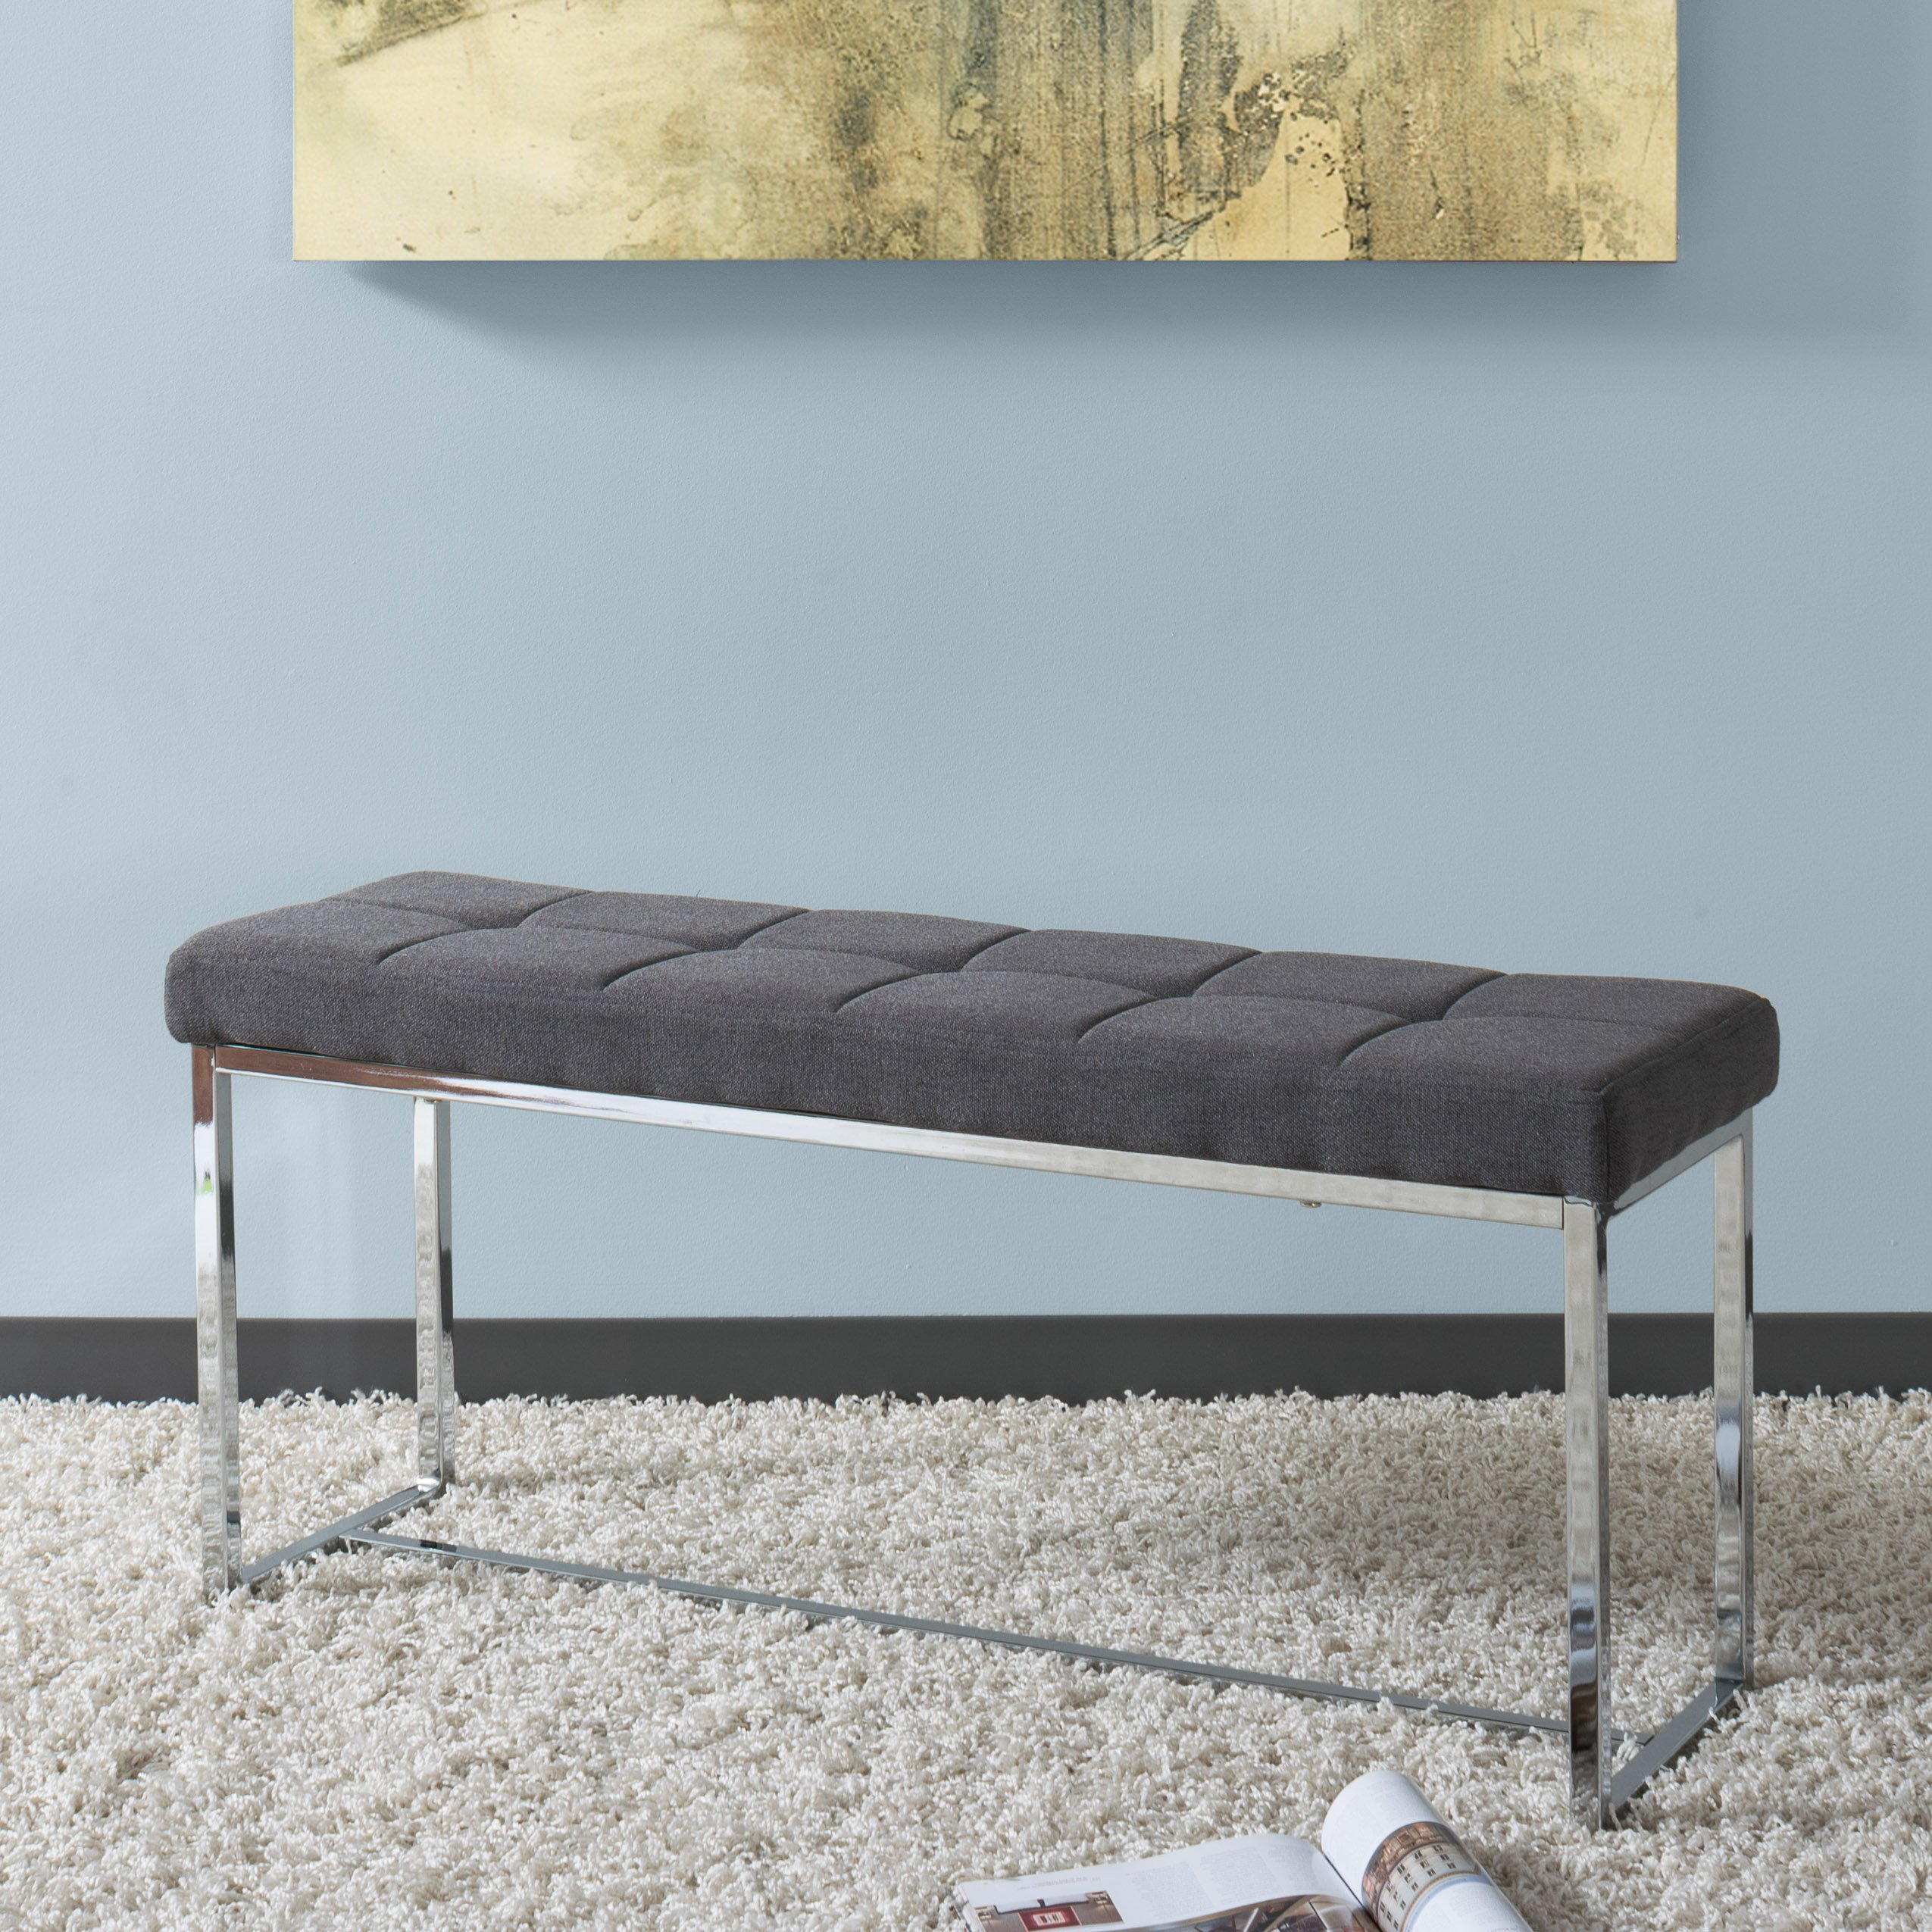 CorLiving LDF-161-O Huntington Bench Grey by CorLiving (Image #3)